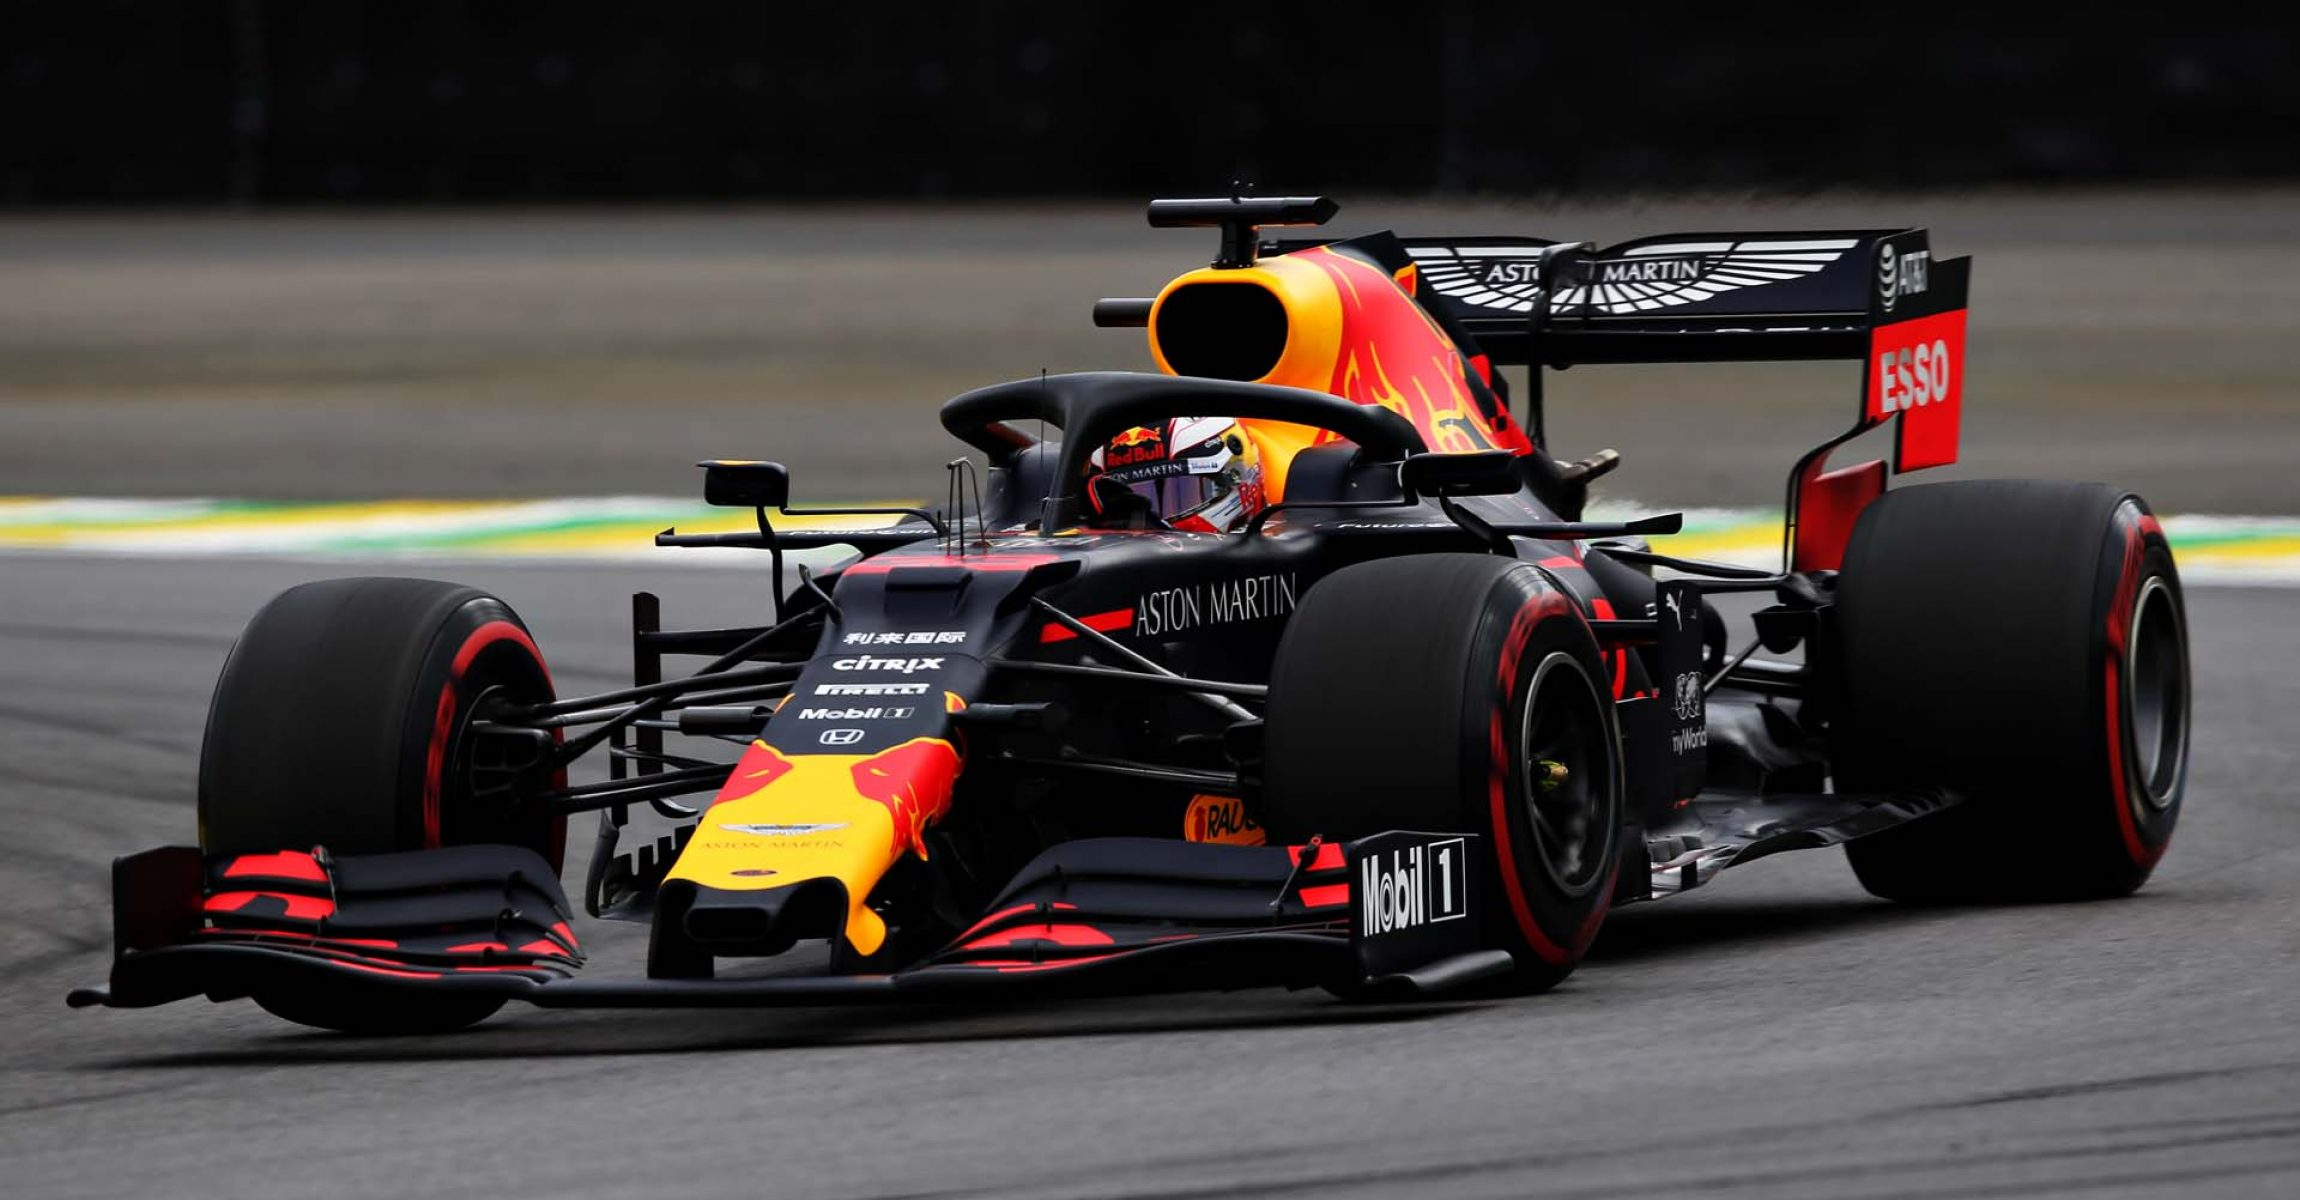 SAO PAULO, BRAZIL - NOVEMBER 16: Max Verstappen of the Netherlands driving the (33) Aston Martin Red Bull Racing RB15 on track during qualifying for the F1 Grand Prix of Brazil at Autodromo Jose Carlos Pace on November 16, 2019 in Sao Paulo, Brazil. (Photo by Charles Coates/Getty Images) // Getty Images / Red Bull Content Pool // AP-2272TKNP51W11 // Usage for editorial use only //